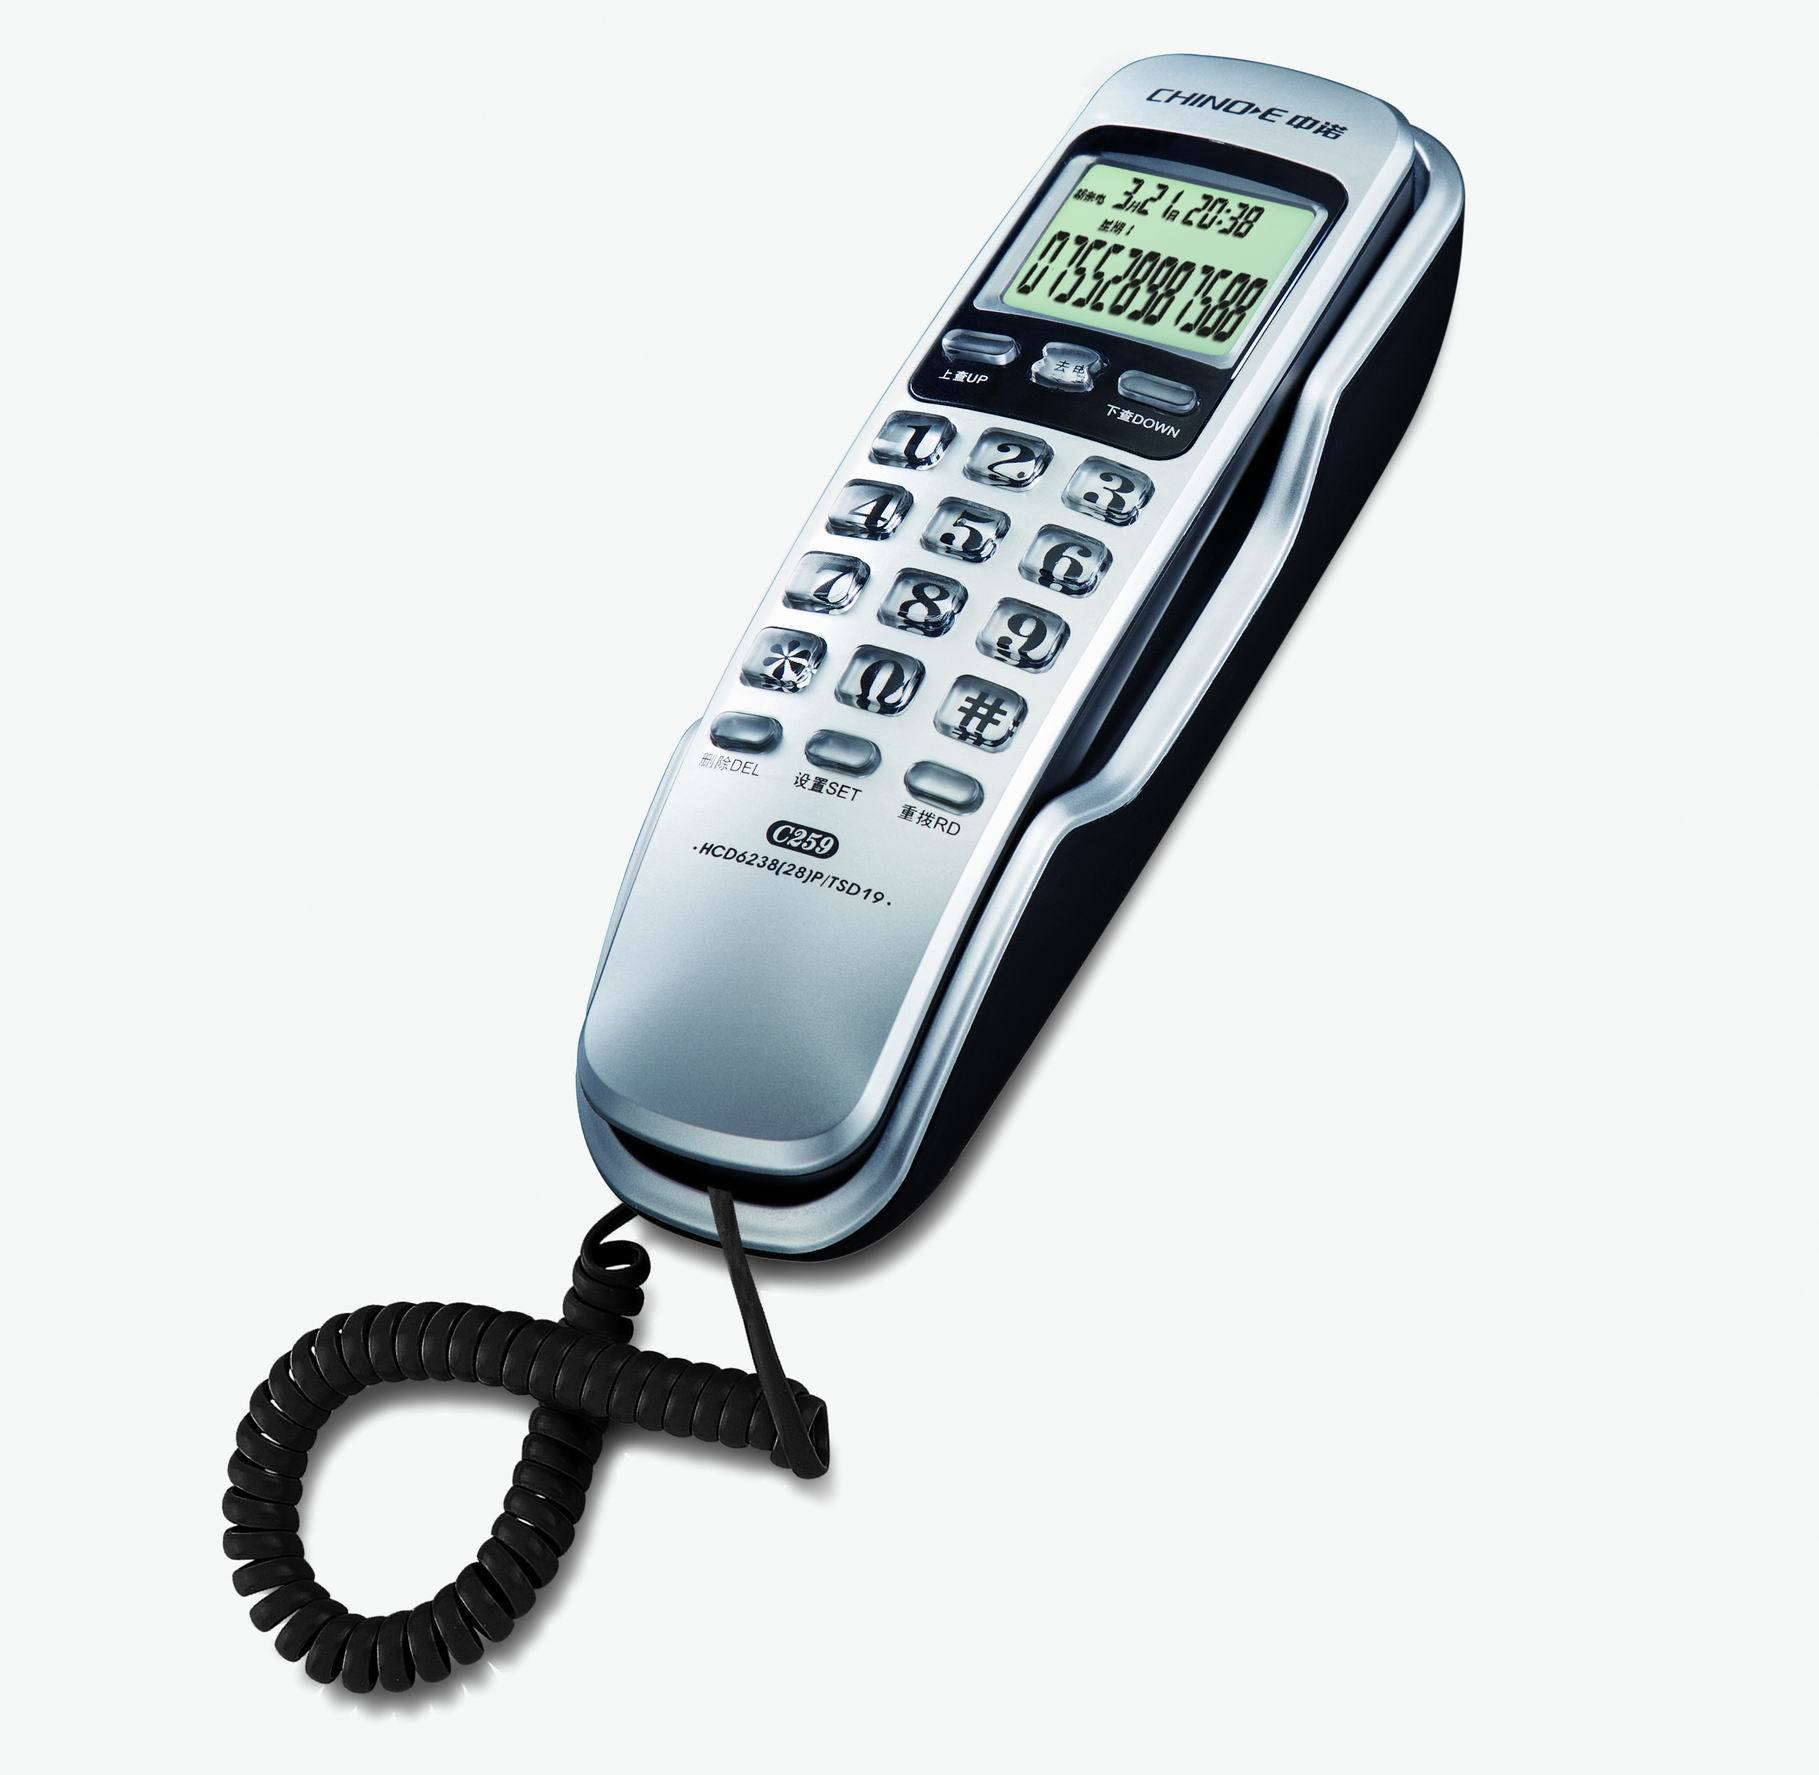 Caller ID Telephone, Corded Phone, Slim Line Caller ID Phone, Wall Telephone, Kitchen Phone, Trimline Telephone